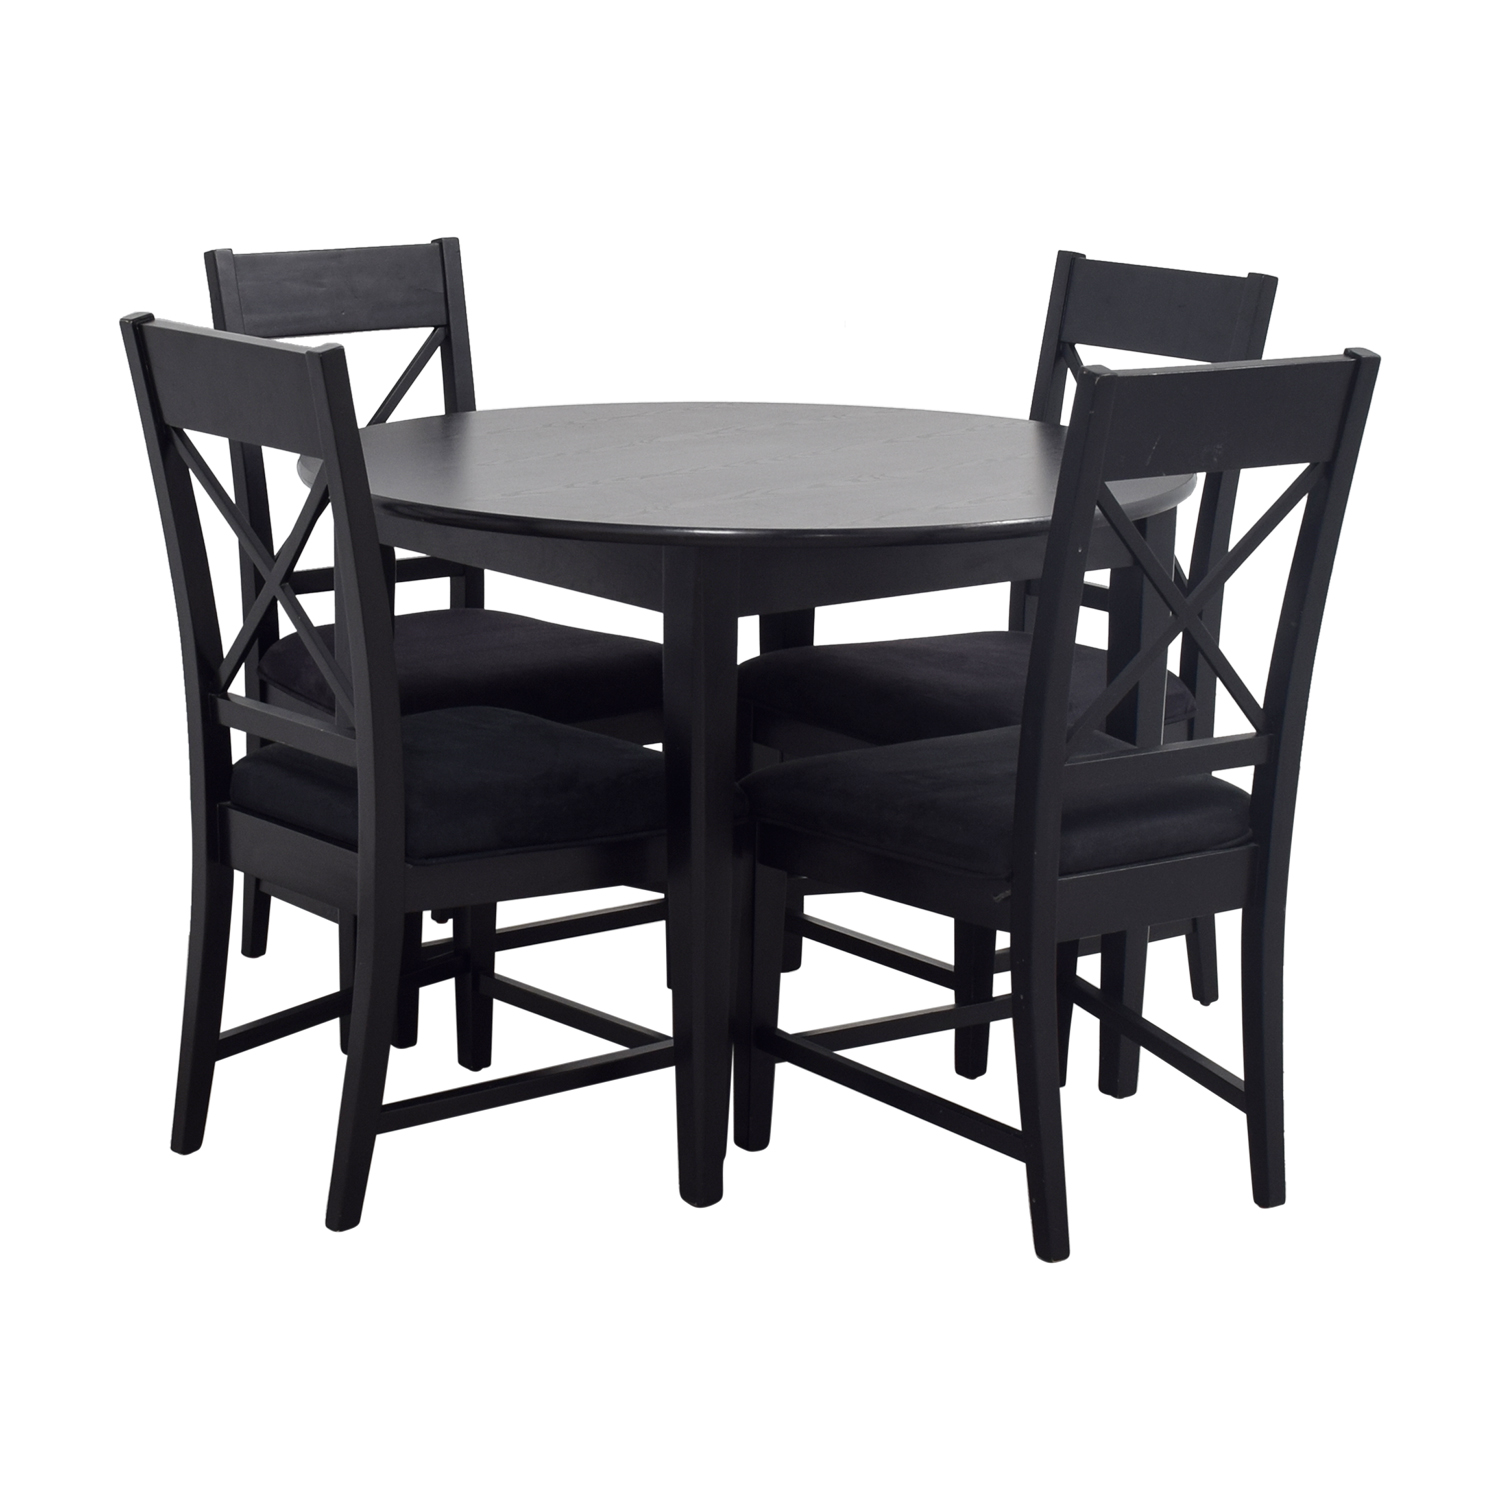 Dining Sets Black: Round Black Wood Dining Set / Tables